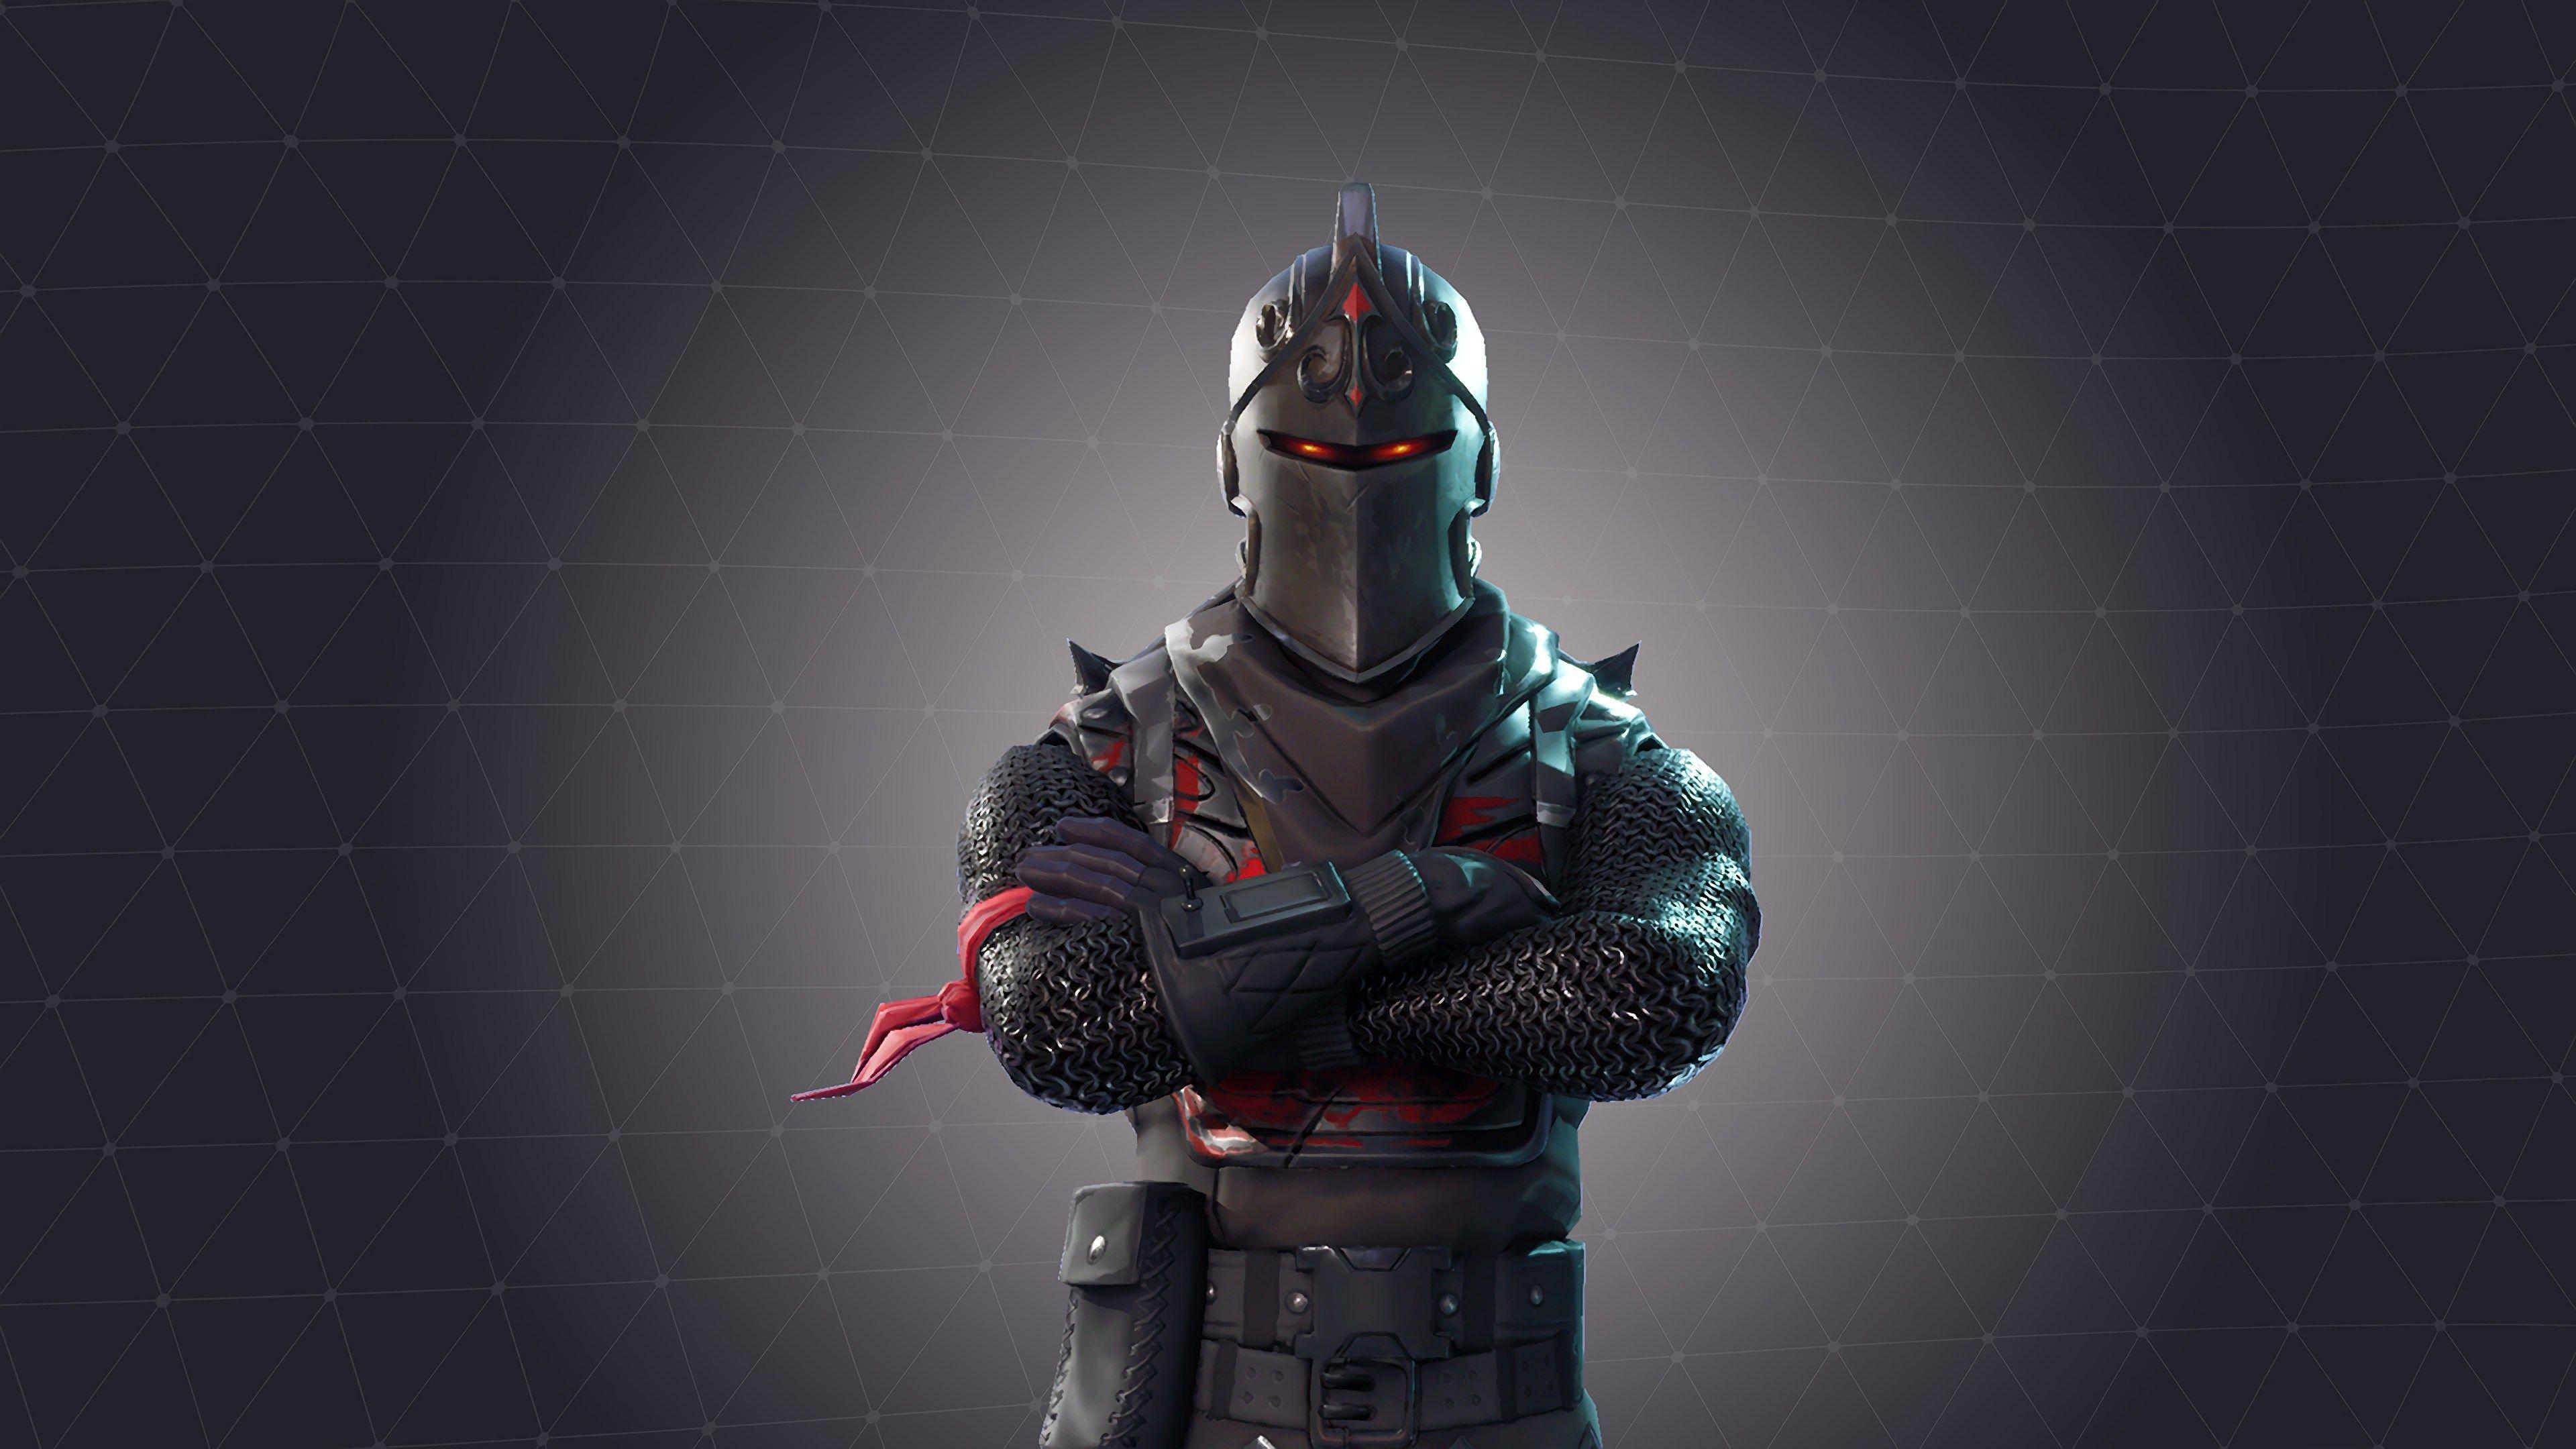 Black Night Fortnite Battle Royale Wallpapers